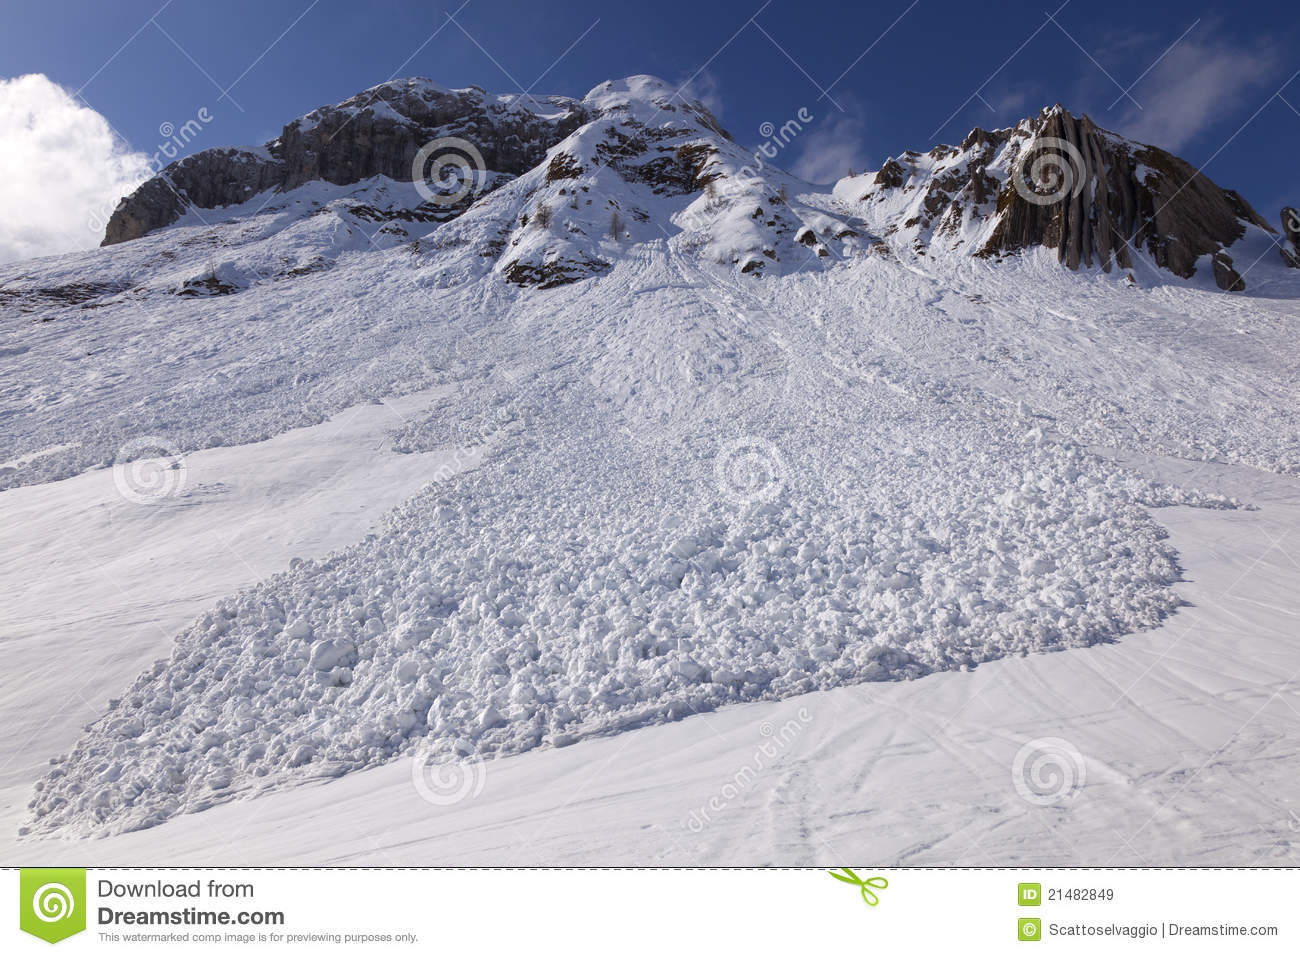 Small avalanche bottom view, San Simone Ski Resort, Italy.